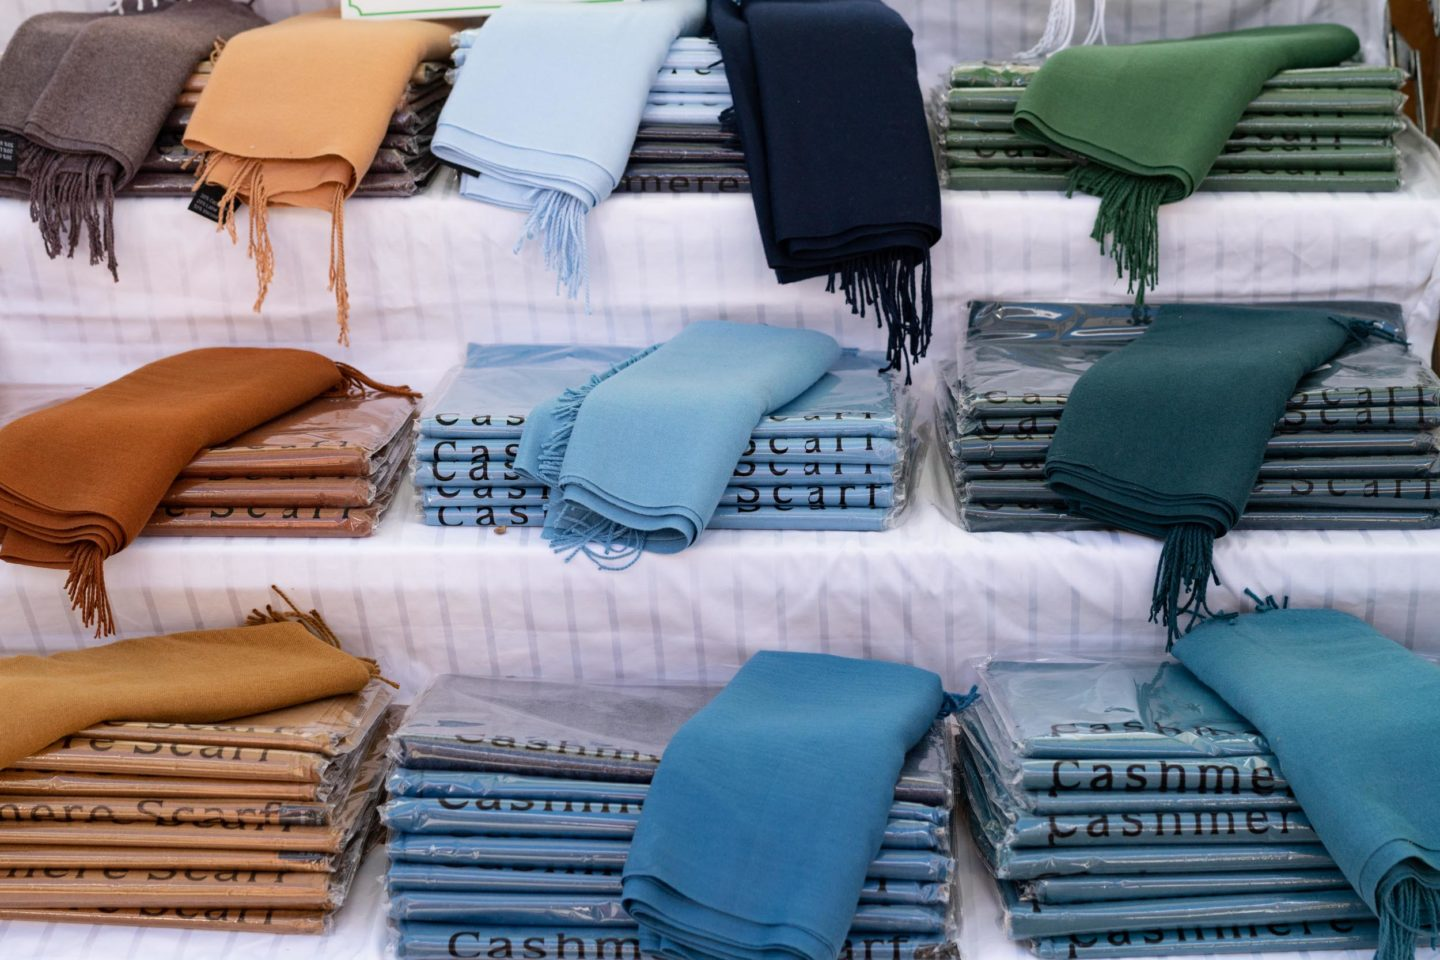 French cashmere/silk scarves